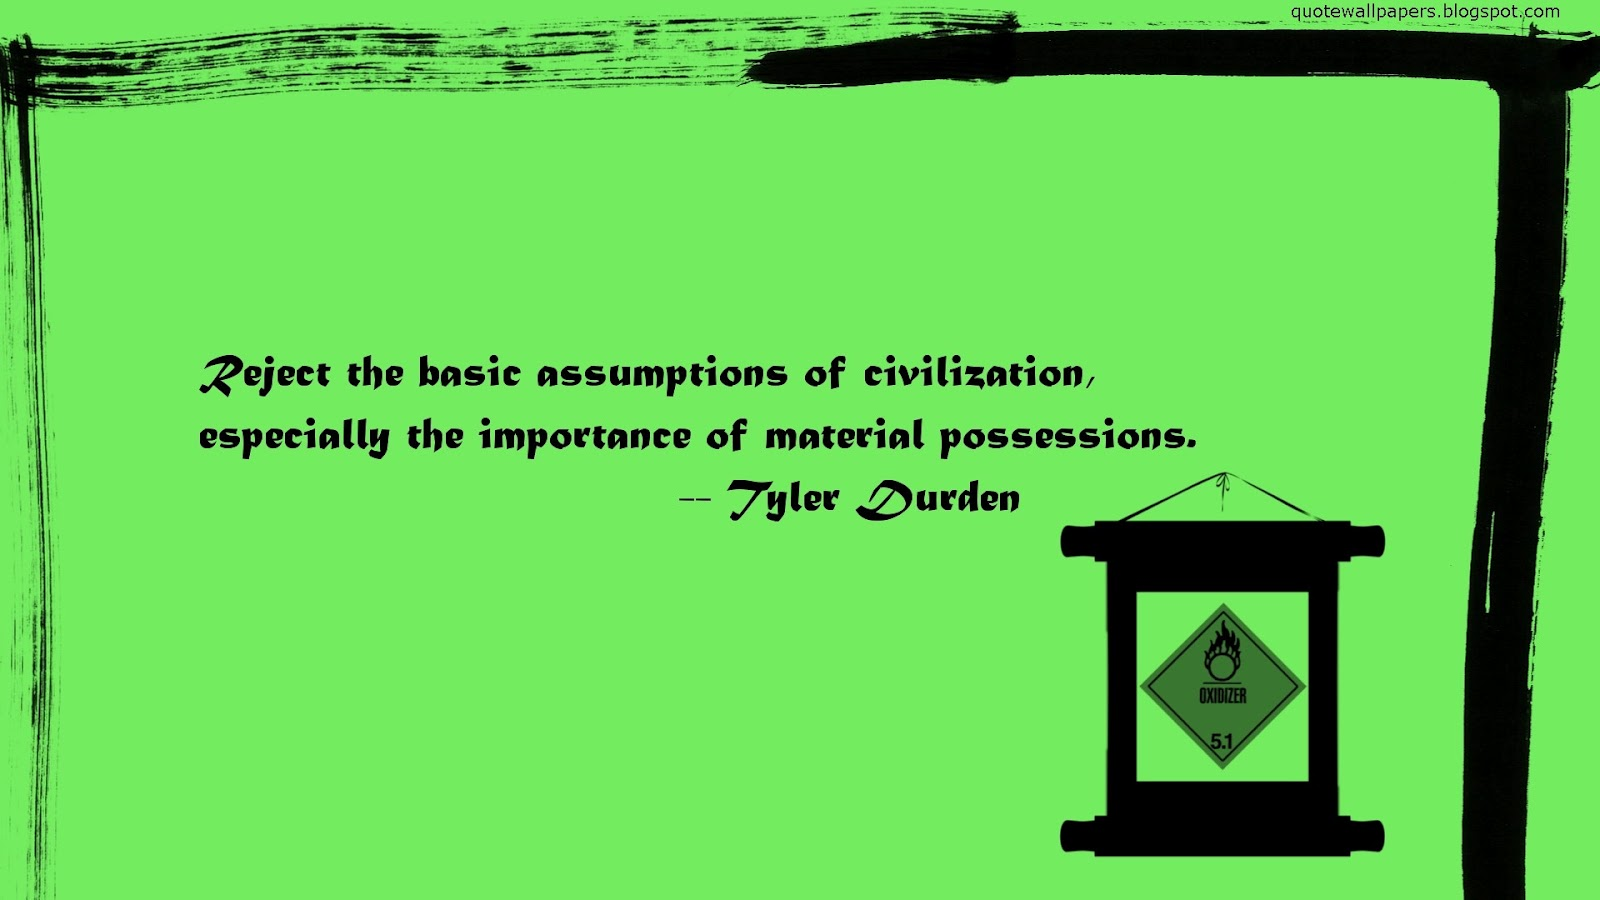 Reject the basic assumptions of civilization, especially the importance of material possessions. TYler Durden